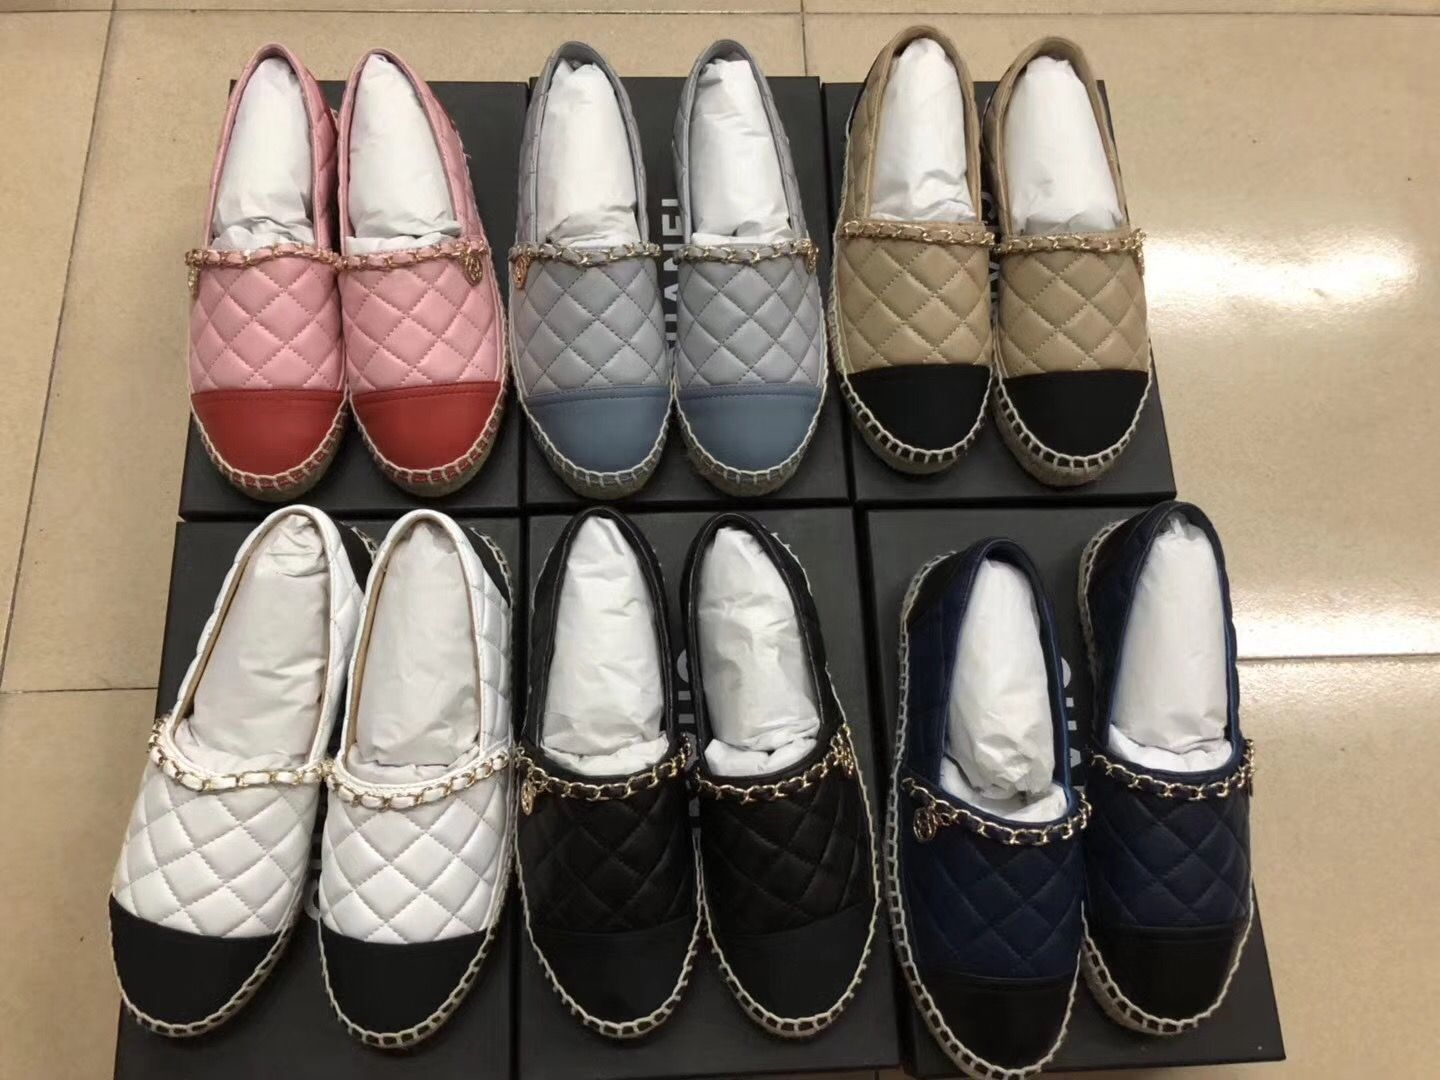 88e0f1a2385 New Chanel chain espadrilles quilted leather flats